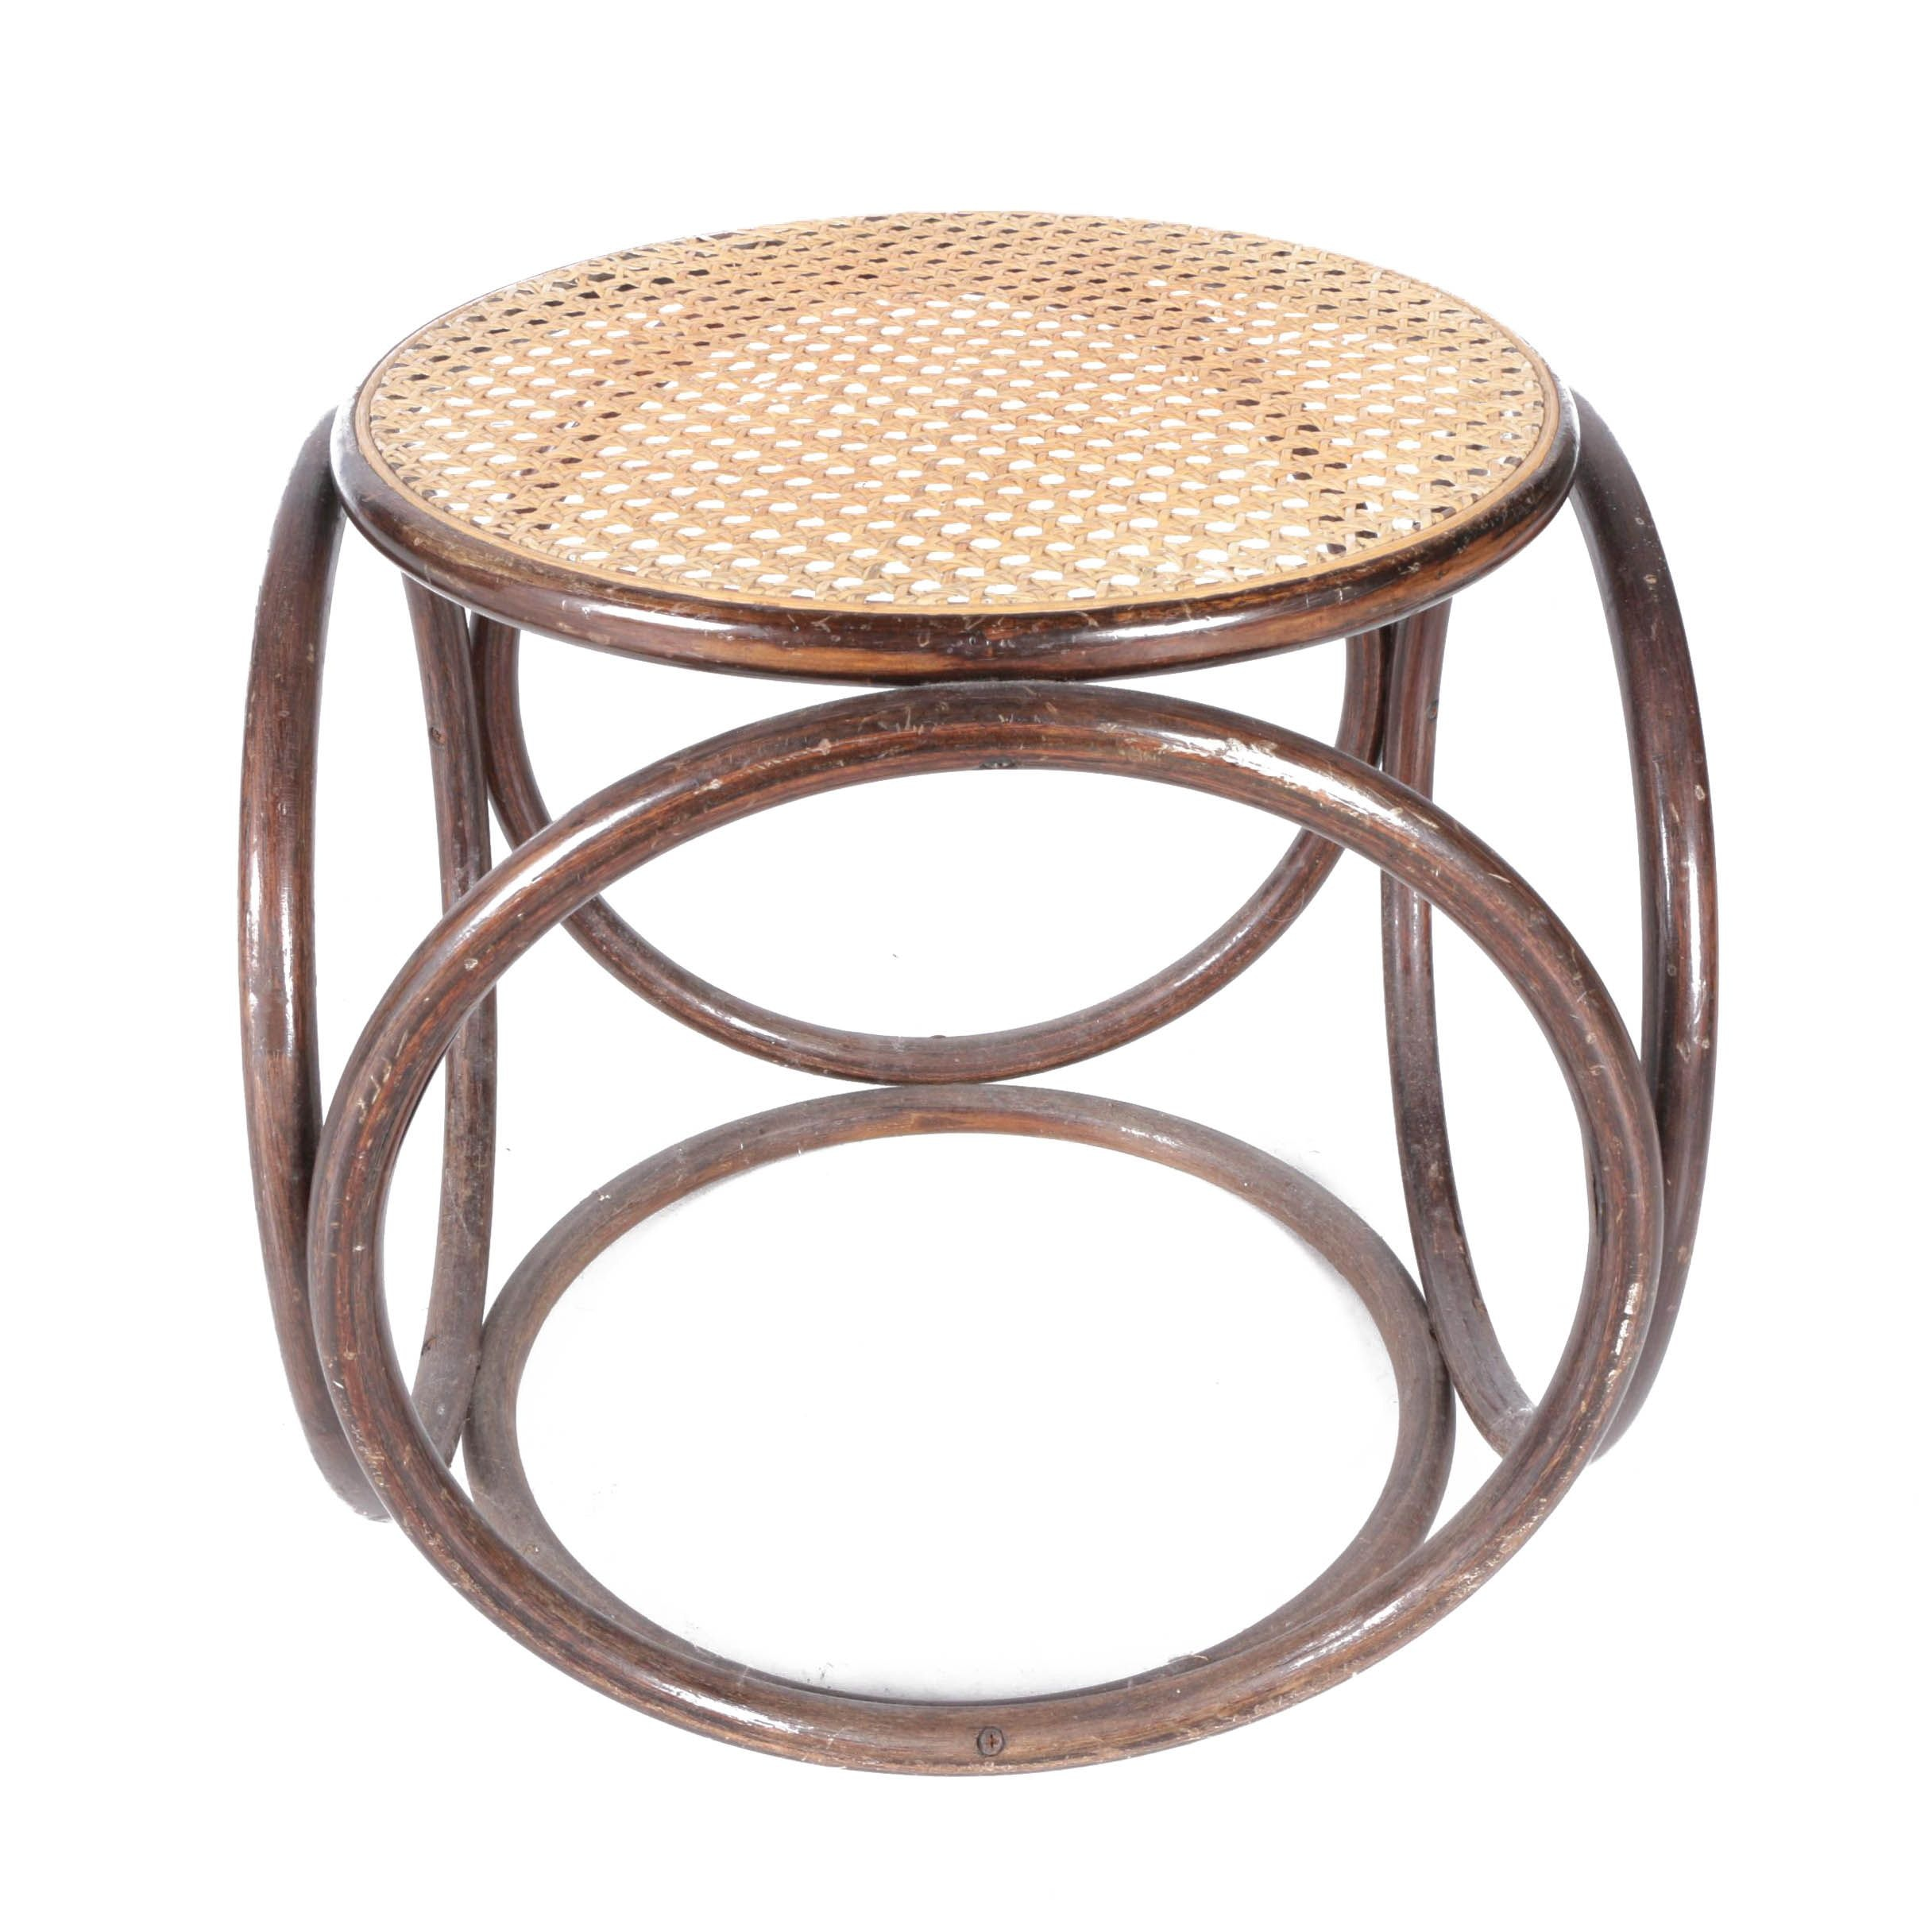 Mid-Century Thonet Style Bentwood and Cane Stool